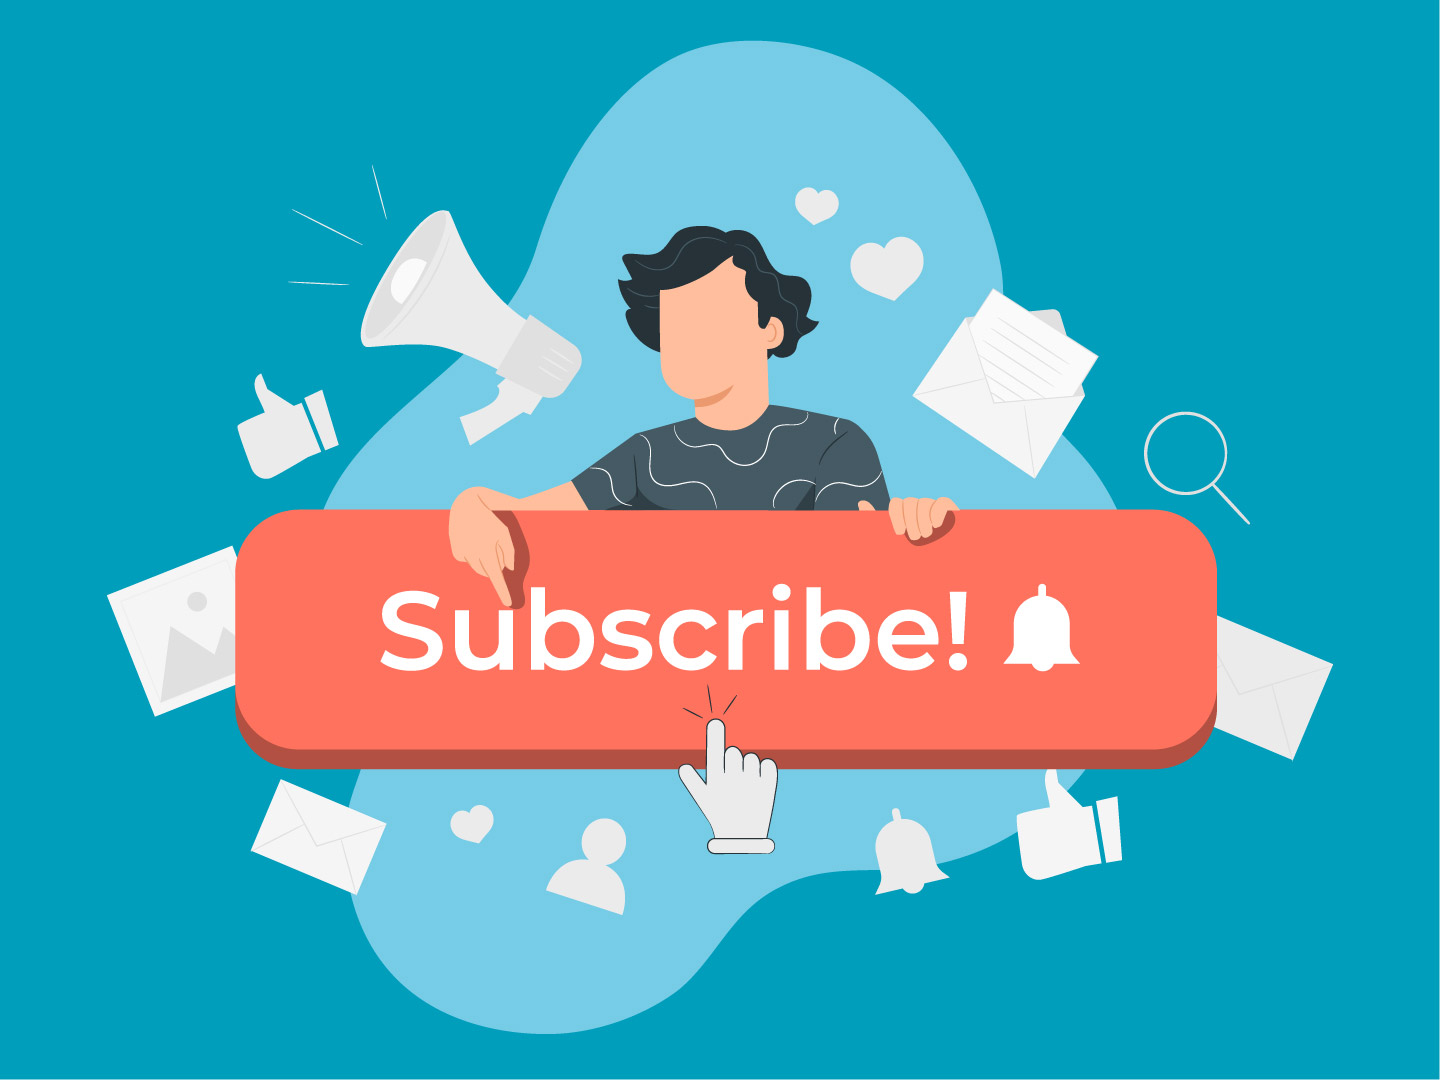 subscribe to sms marketing